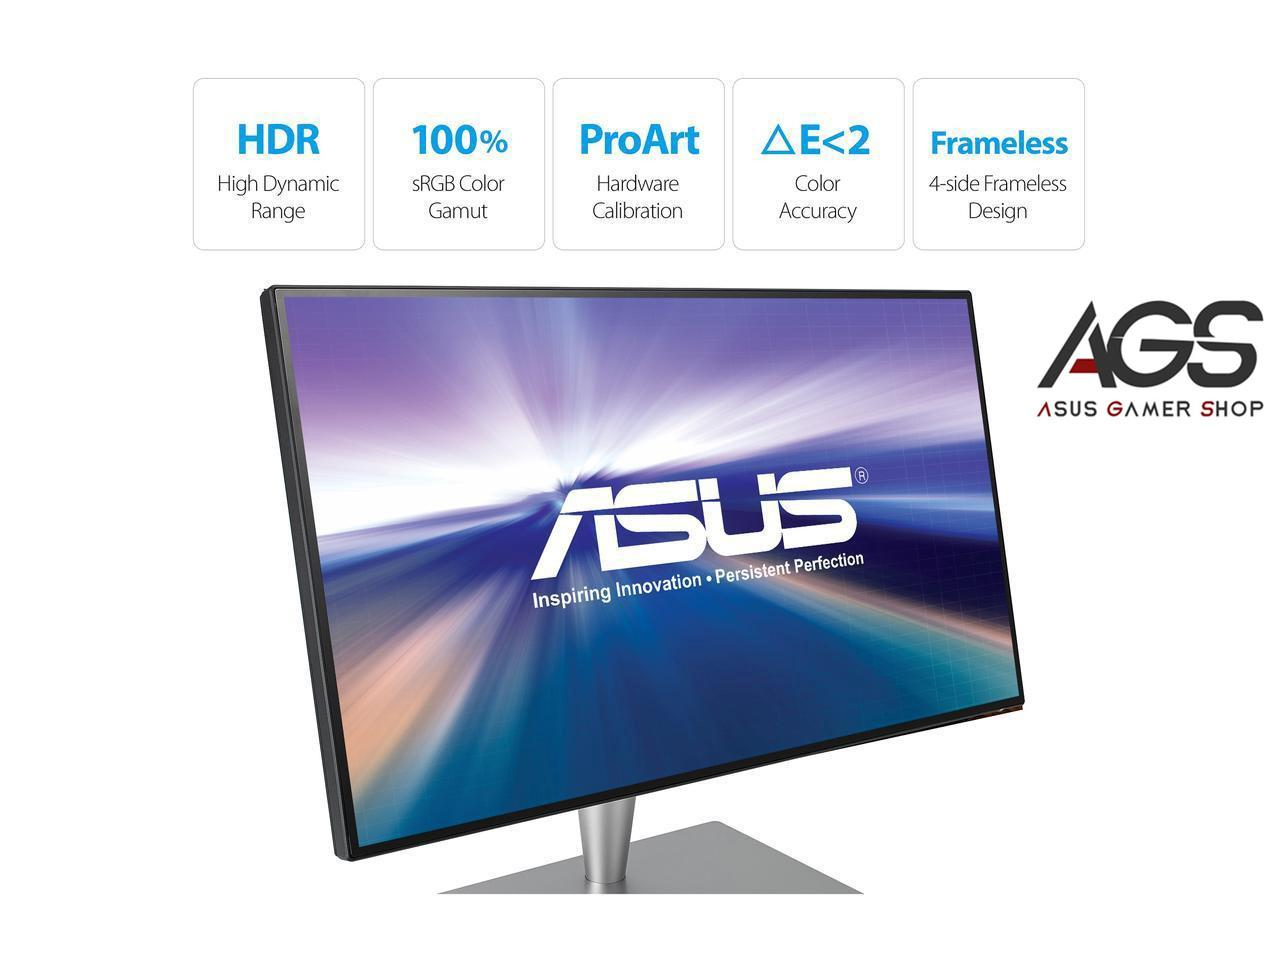 ASUS ProArt PA27AC Grey 27 5ms (GTG) WQHD 2560x1440 HDR-10 100% sRGB TB3 DP  1 2 HDMI 2 0a ProArt Monitor with Eye Care Singapore